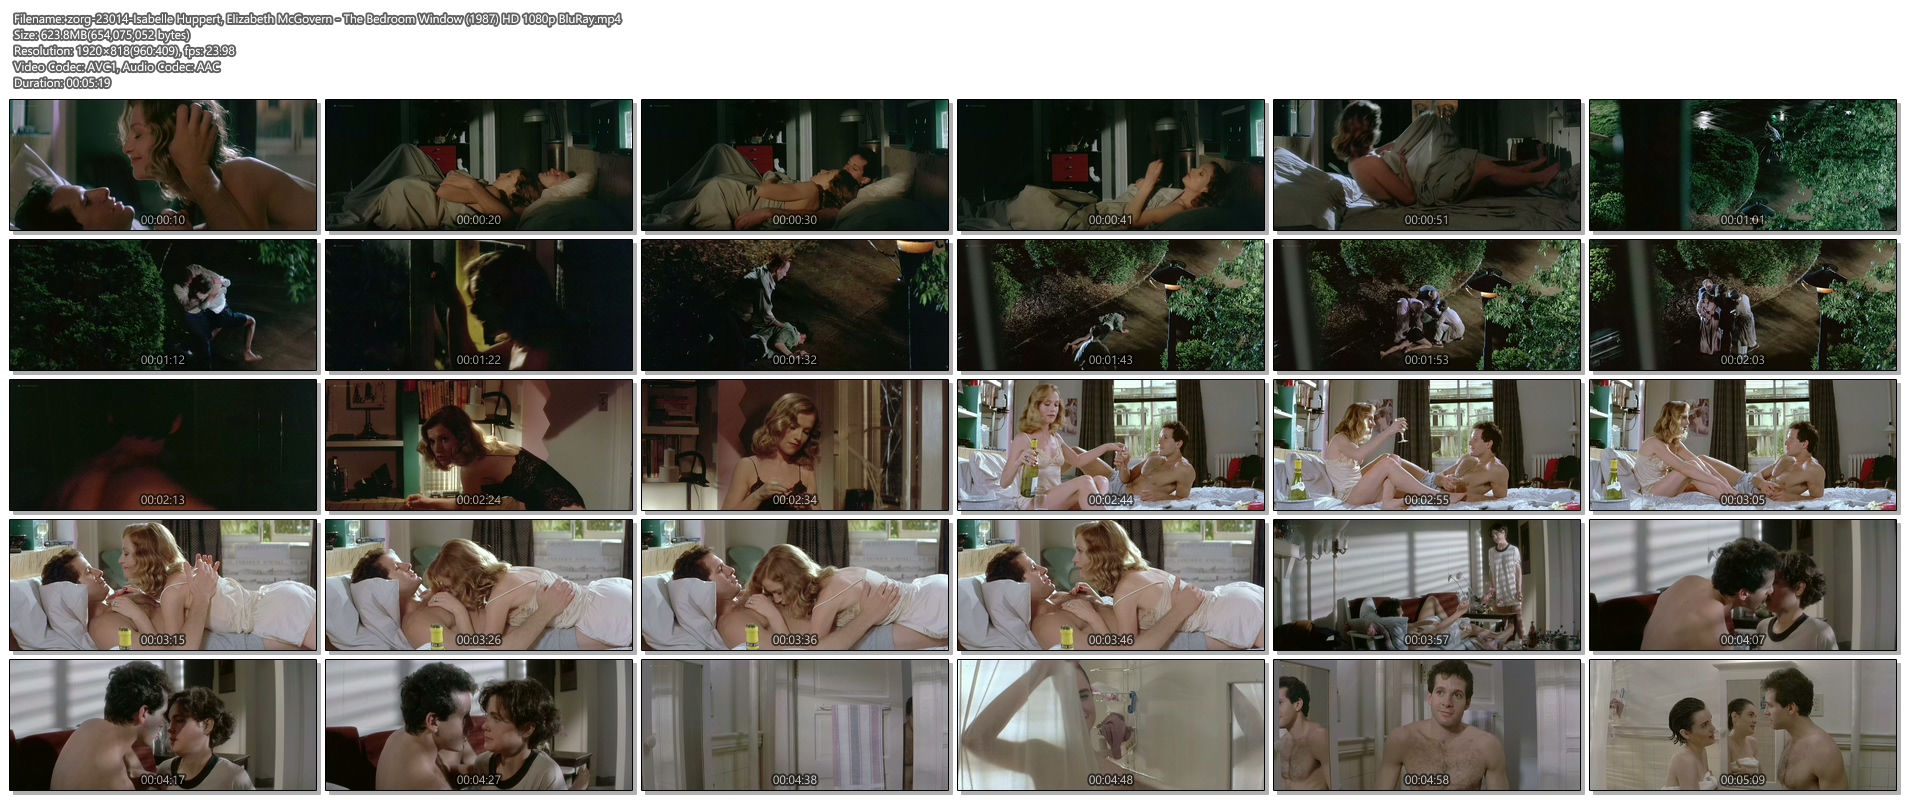 Isabelle Huppert nude topless and butt Elizabeth McGovern nude - The Bedroom Window (1987) HD 1080p BluRay (1)